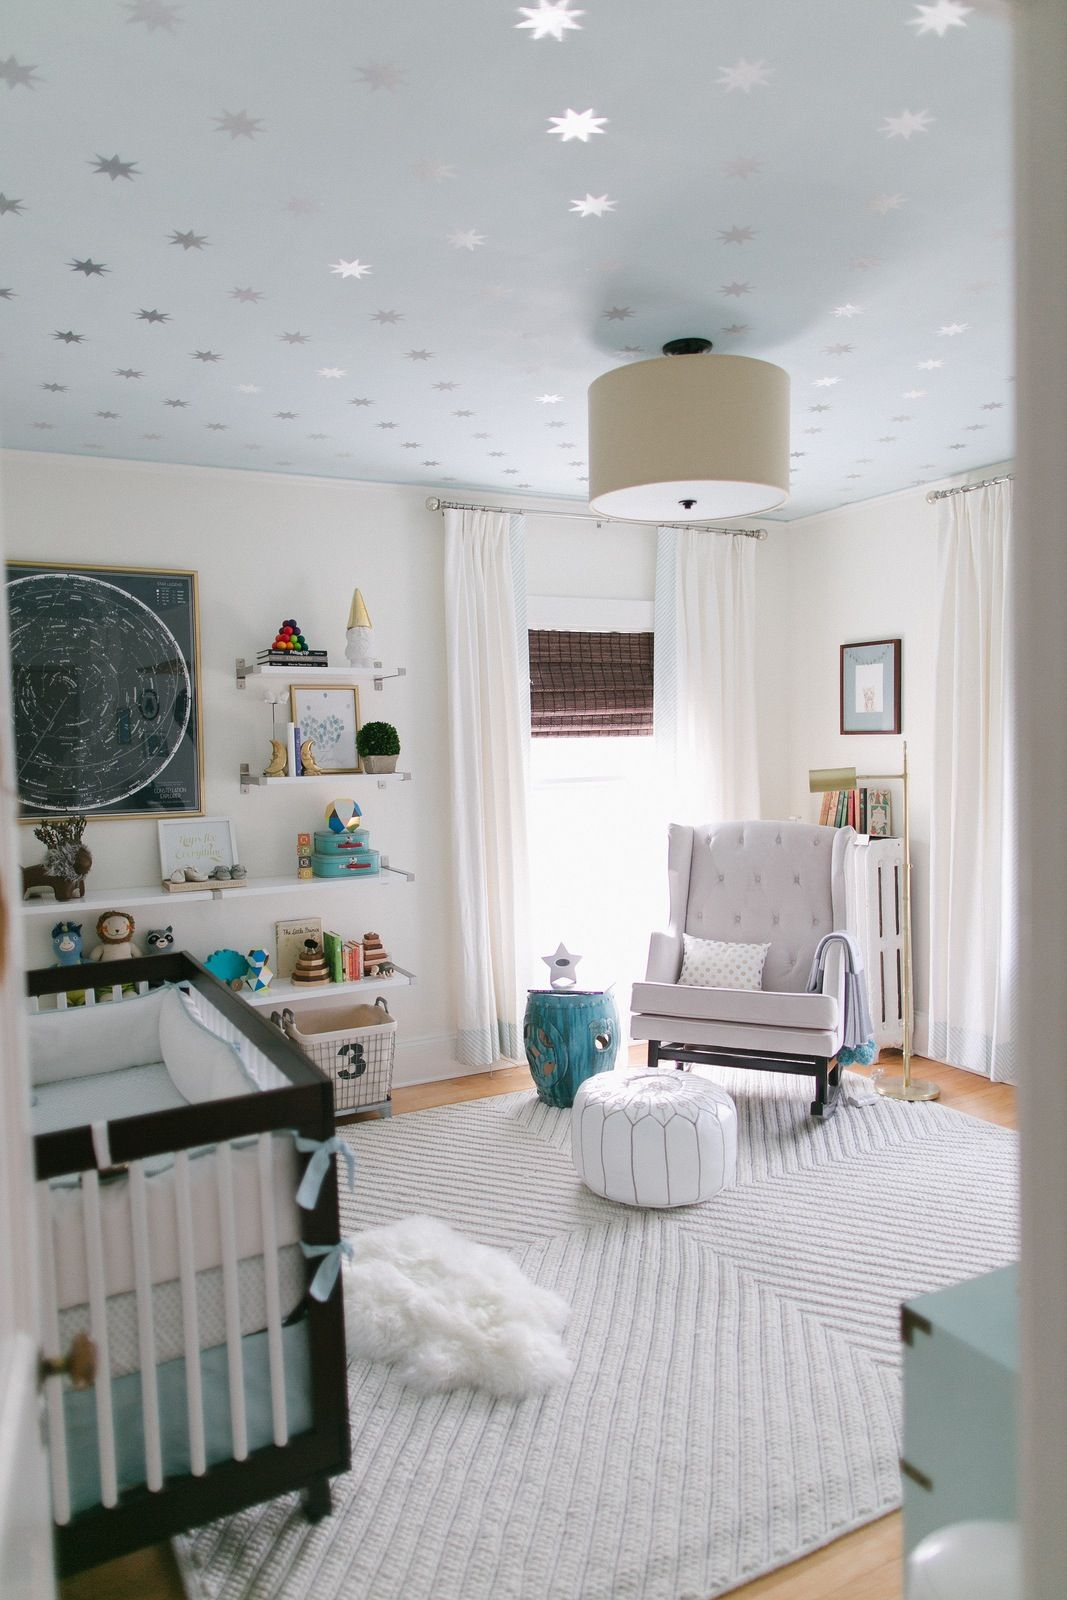 Reed S Soft Starry Space With Images Space Nursery Baby Boy Rooms Nursery Inspiration